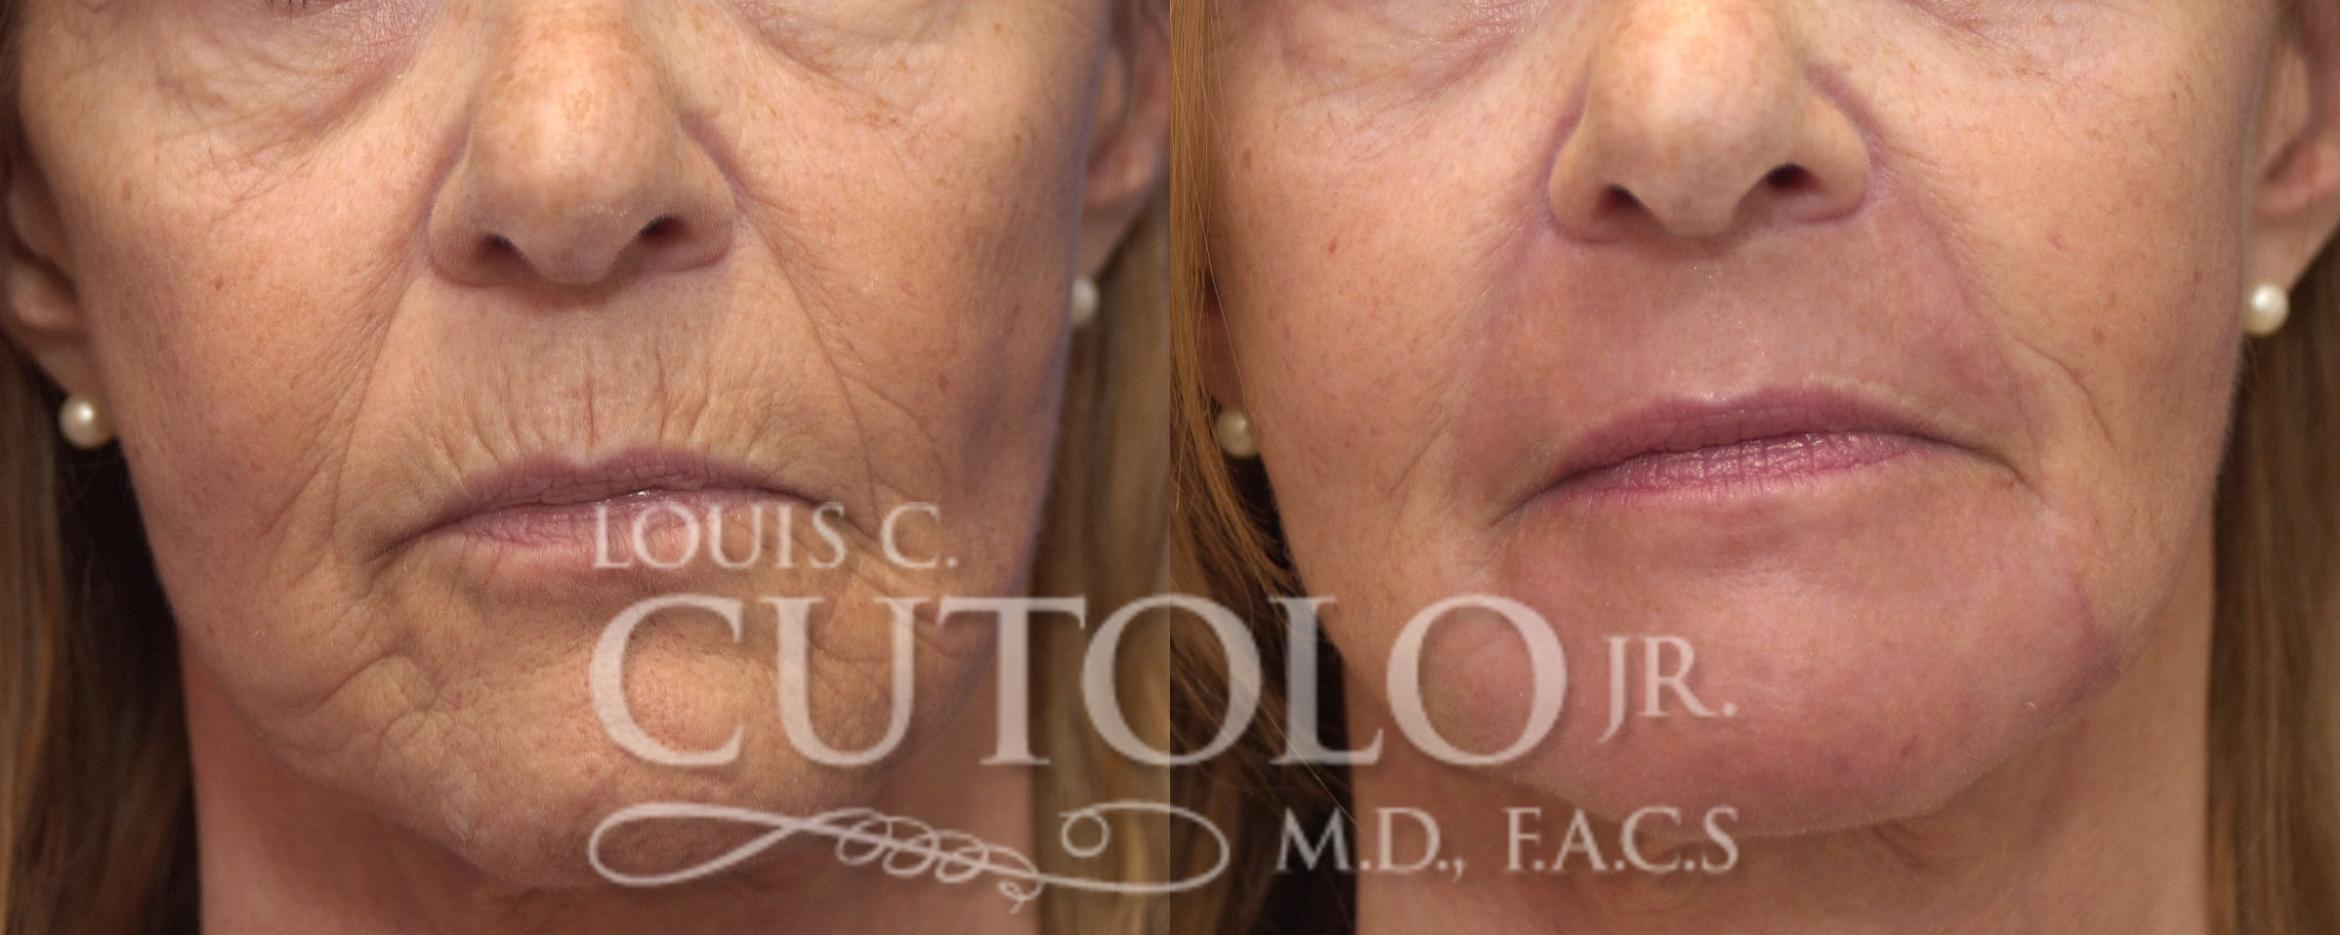 Laser Skin Resurfacing Before & After Photo | Brooklyn, Staten Island, Queens, NY | Louis C. Cotolo, Jr., M.D., F.A.C.S.